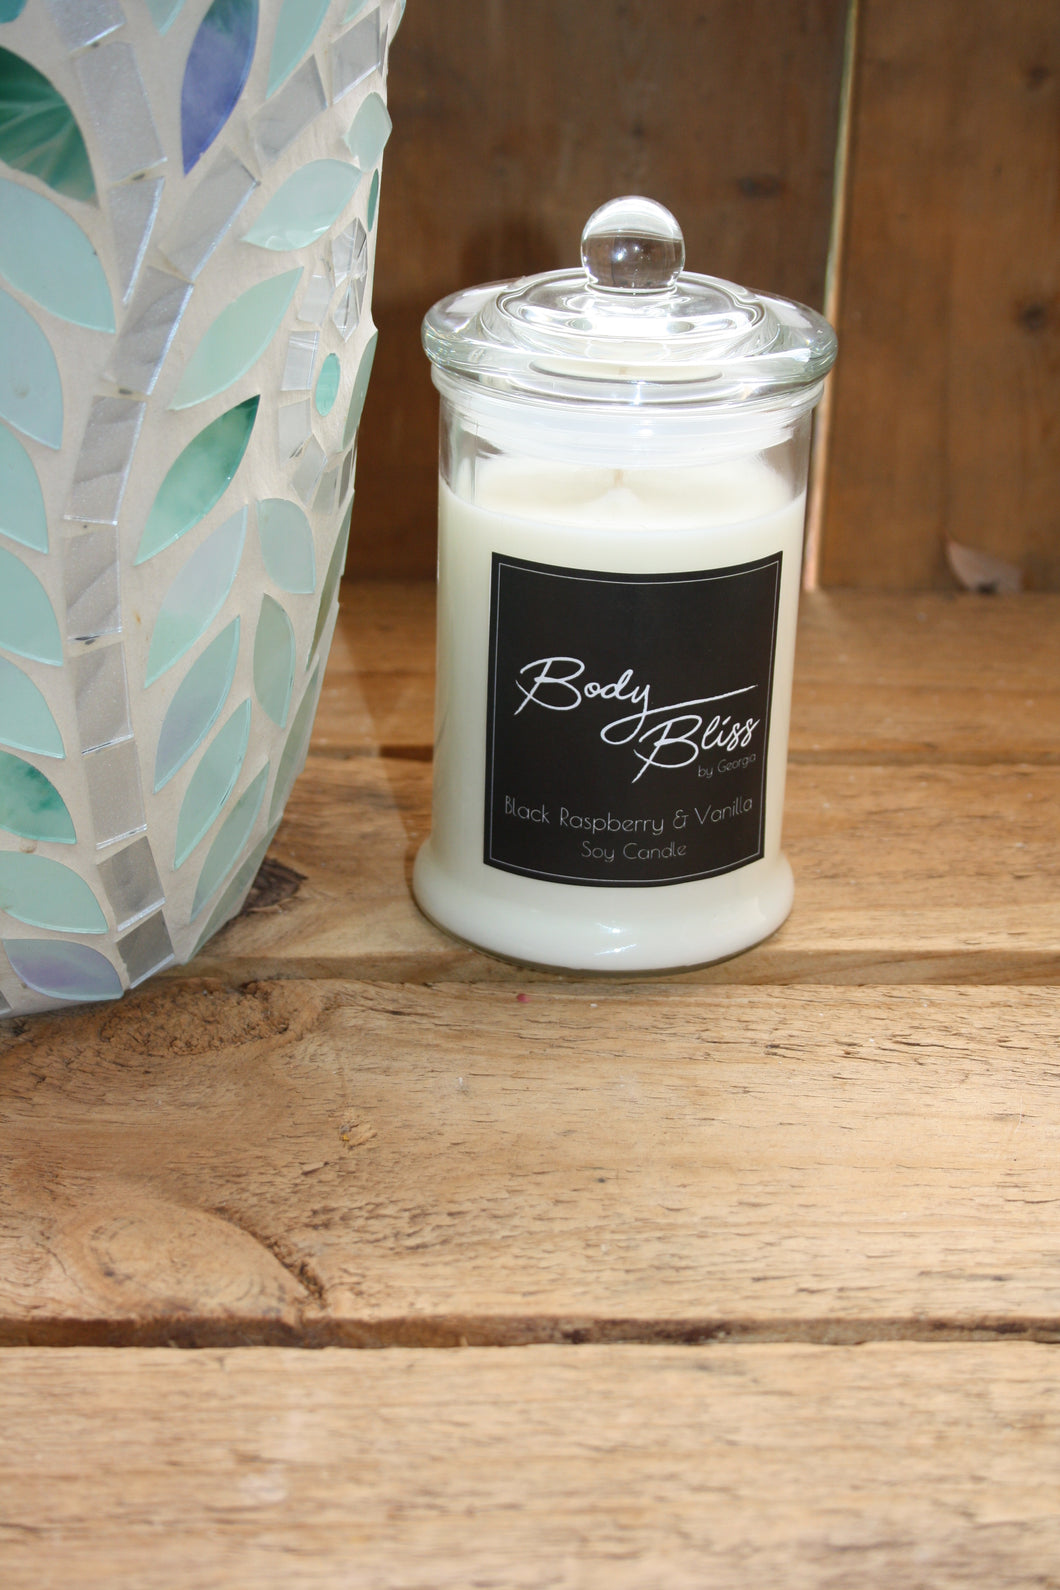 Black Raspberry & Vanilla Soy Candle